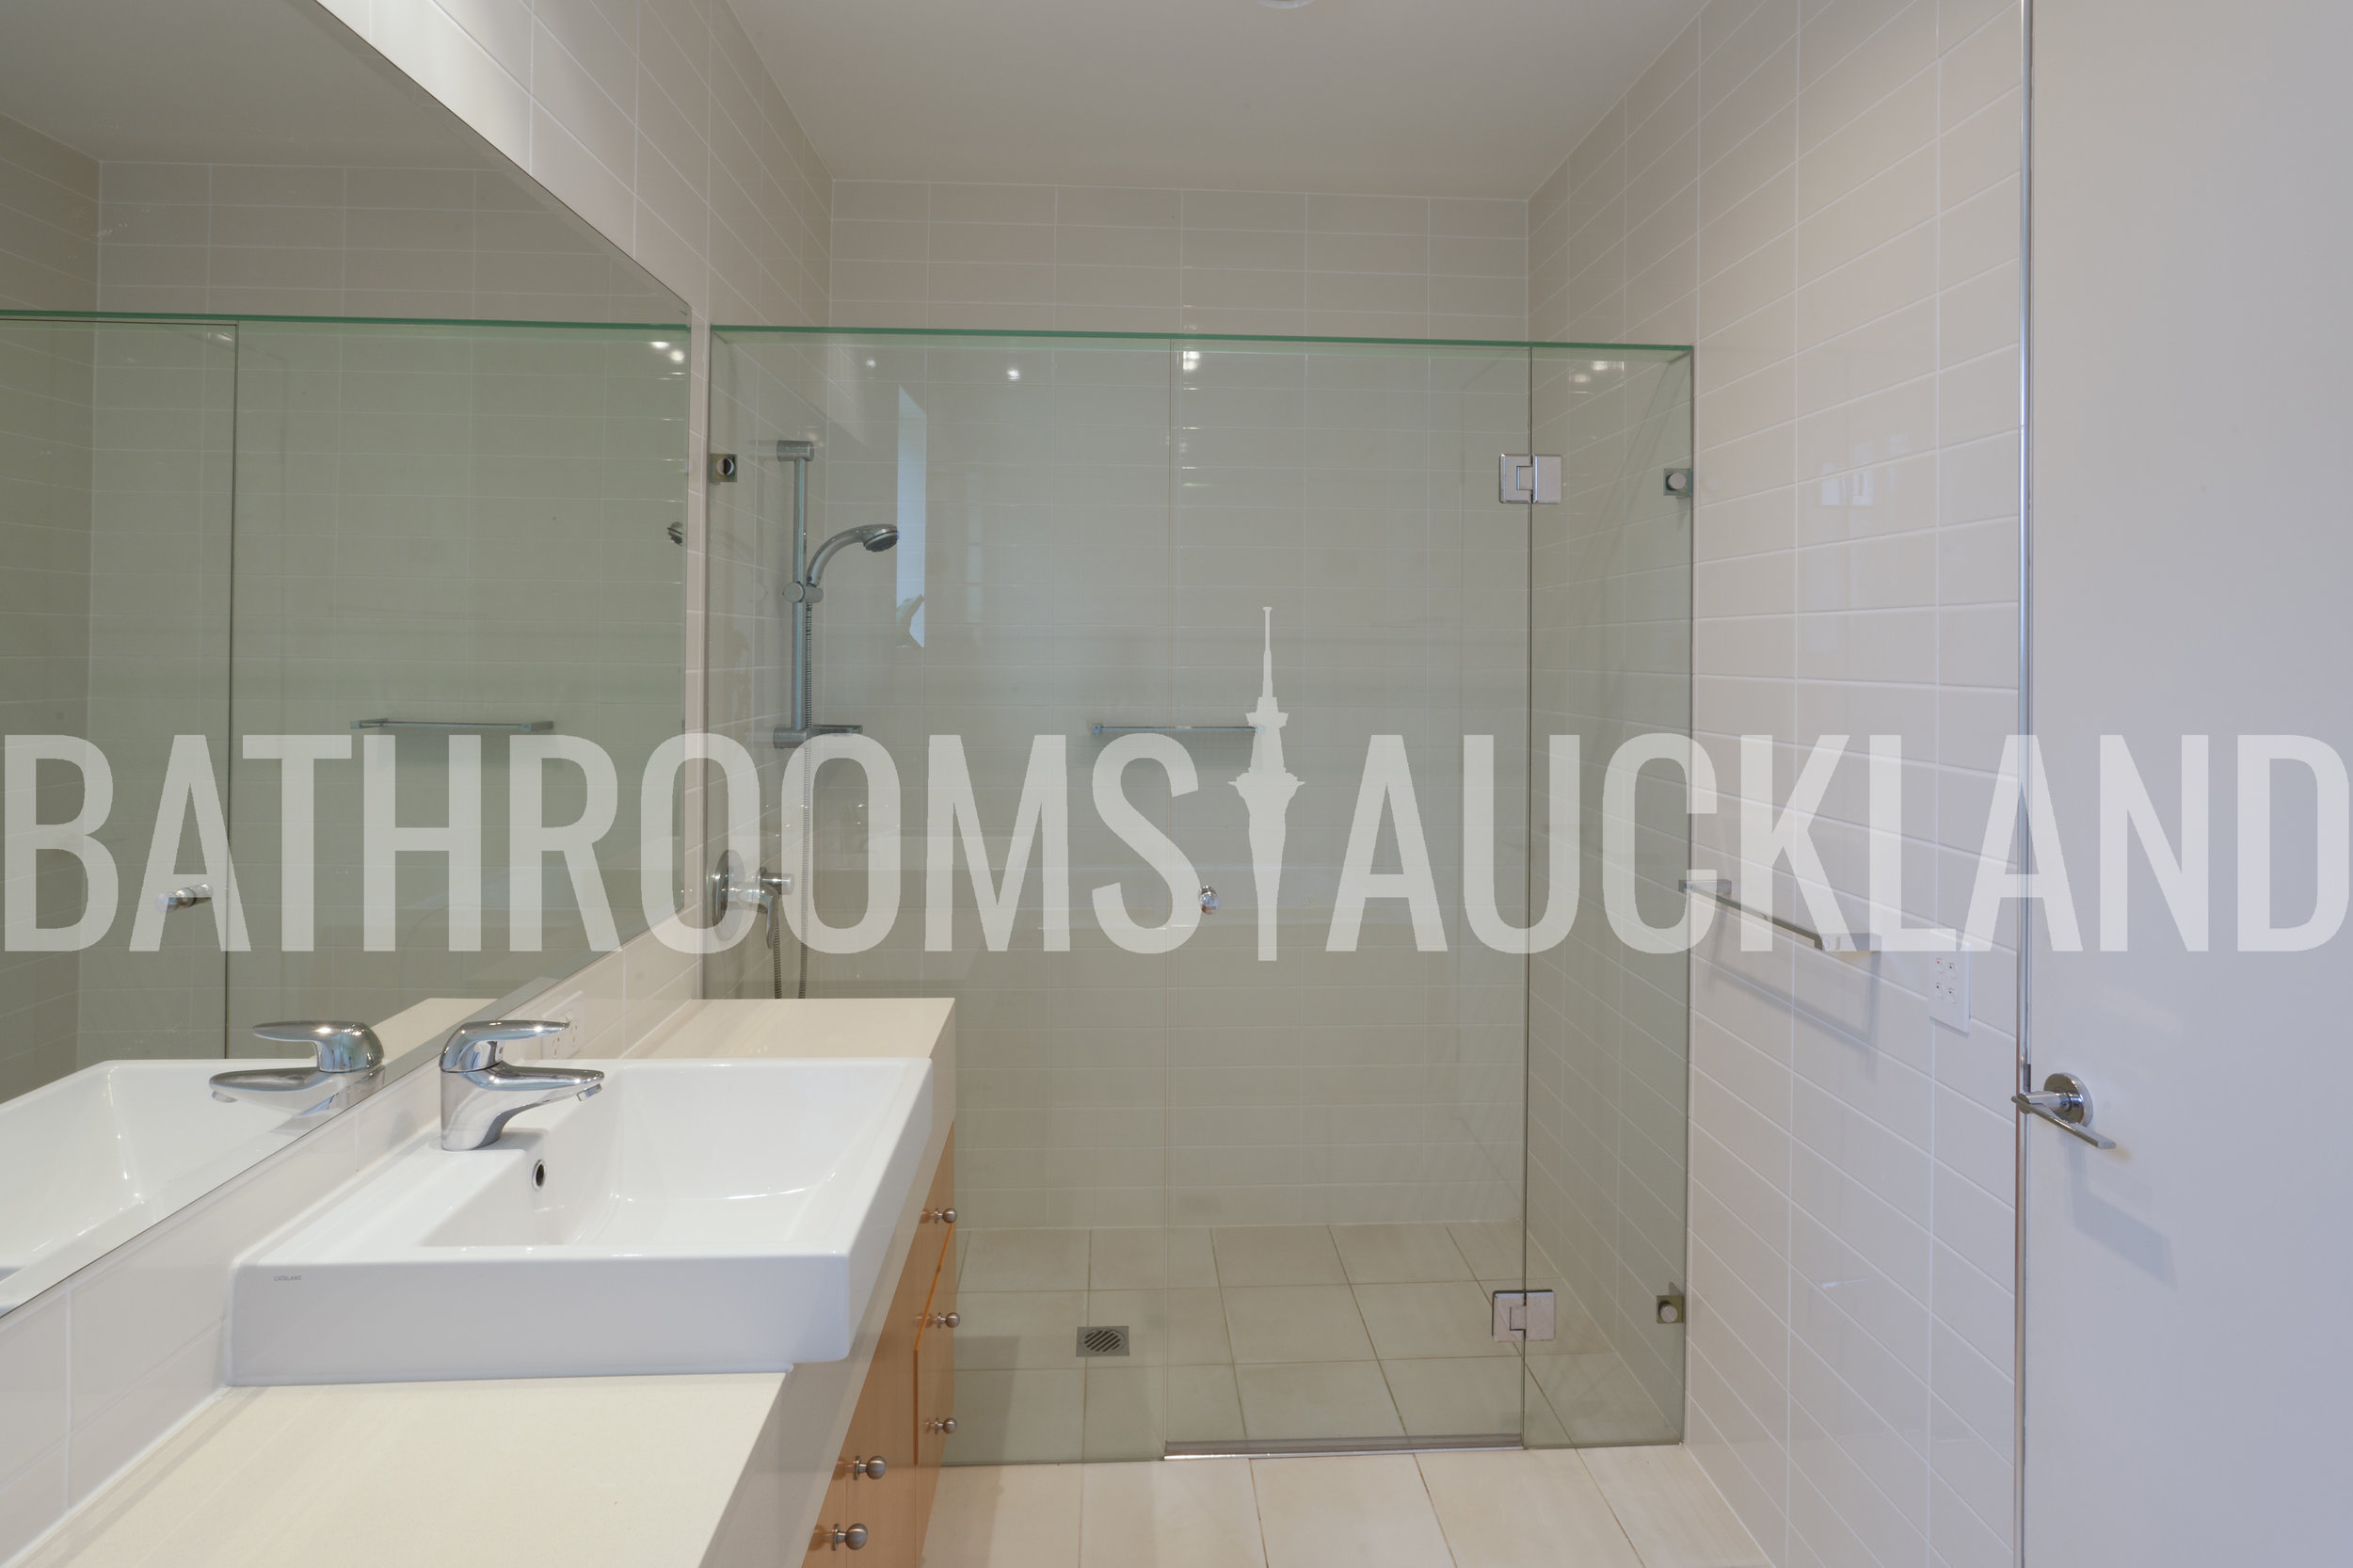 Bathrooms Auckland Renovation_Bathrooms In Auckland_Bathroom Renovation_Bathrooms Renovation_Bathrooms Auckland Renovation .125.jpg